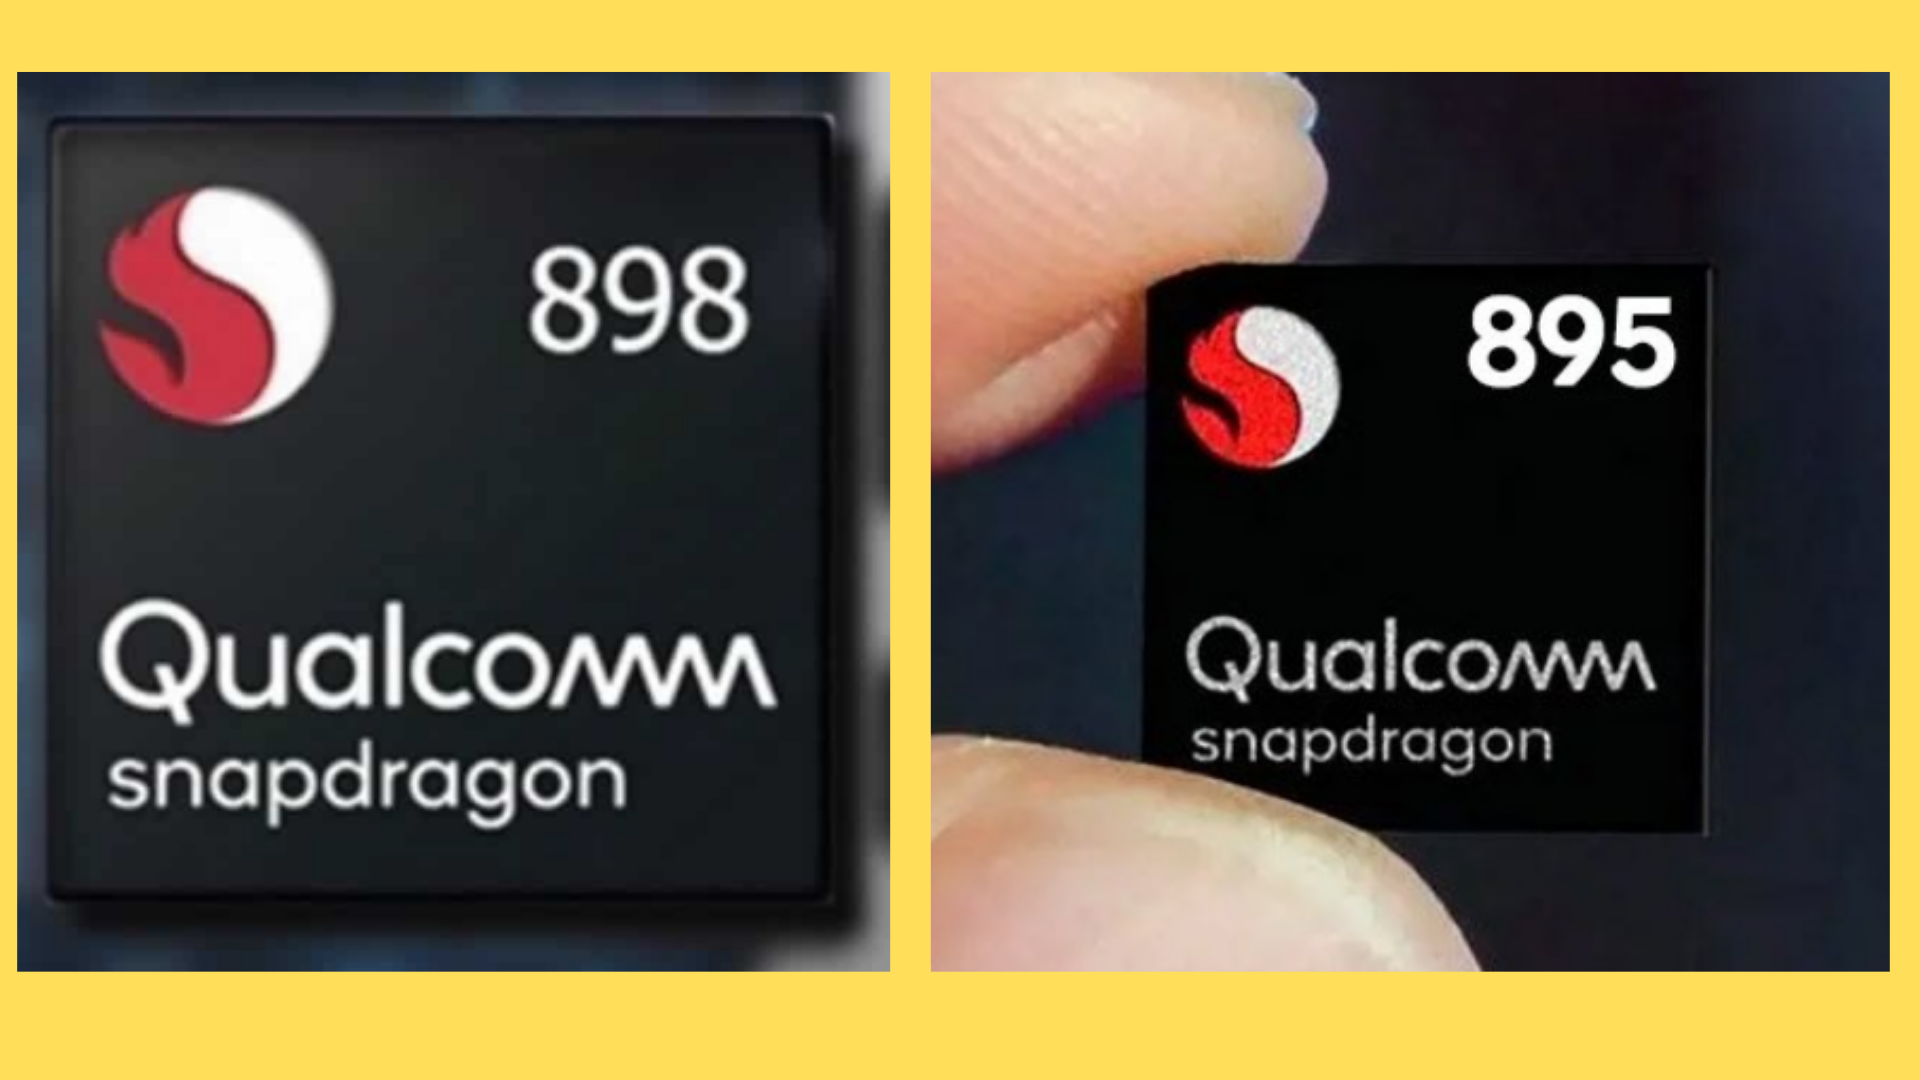 Qualcomm Snapdragon 895/898 to offer performance boost compared to Snapdragon 888